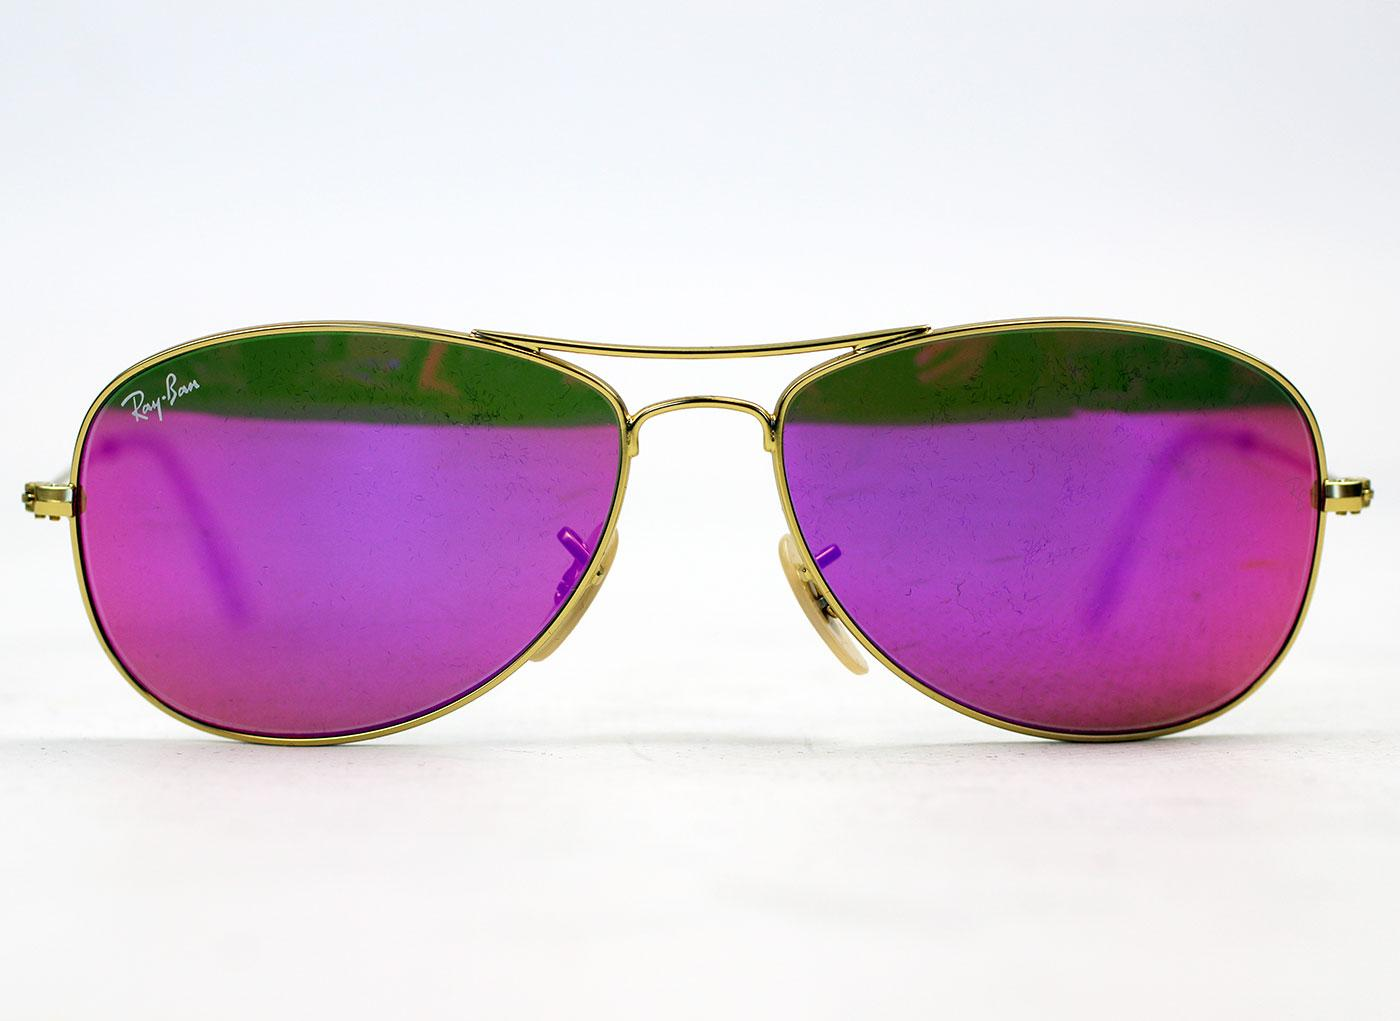 cdb2802ee6 Ray-Ban Retro Indie Cockpit Flash Lens Sunglasses in Pink